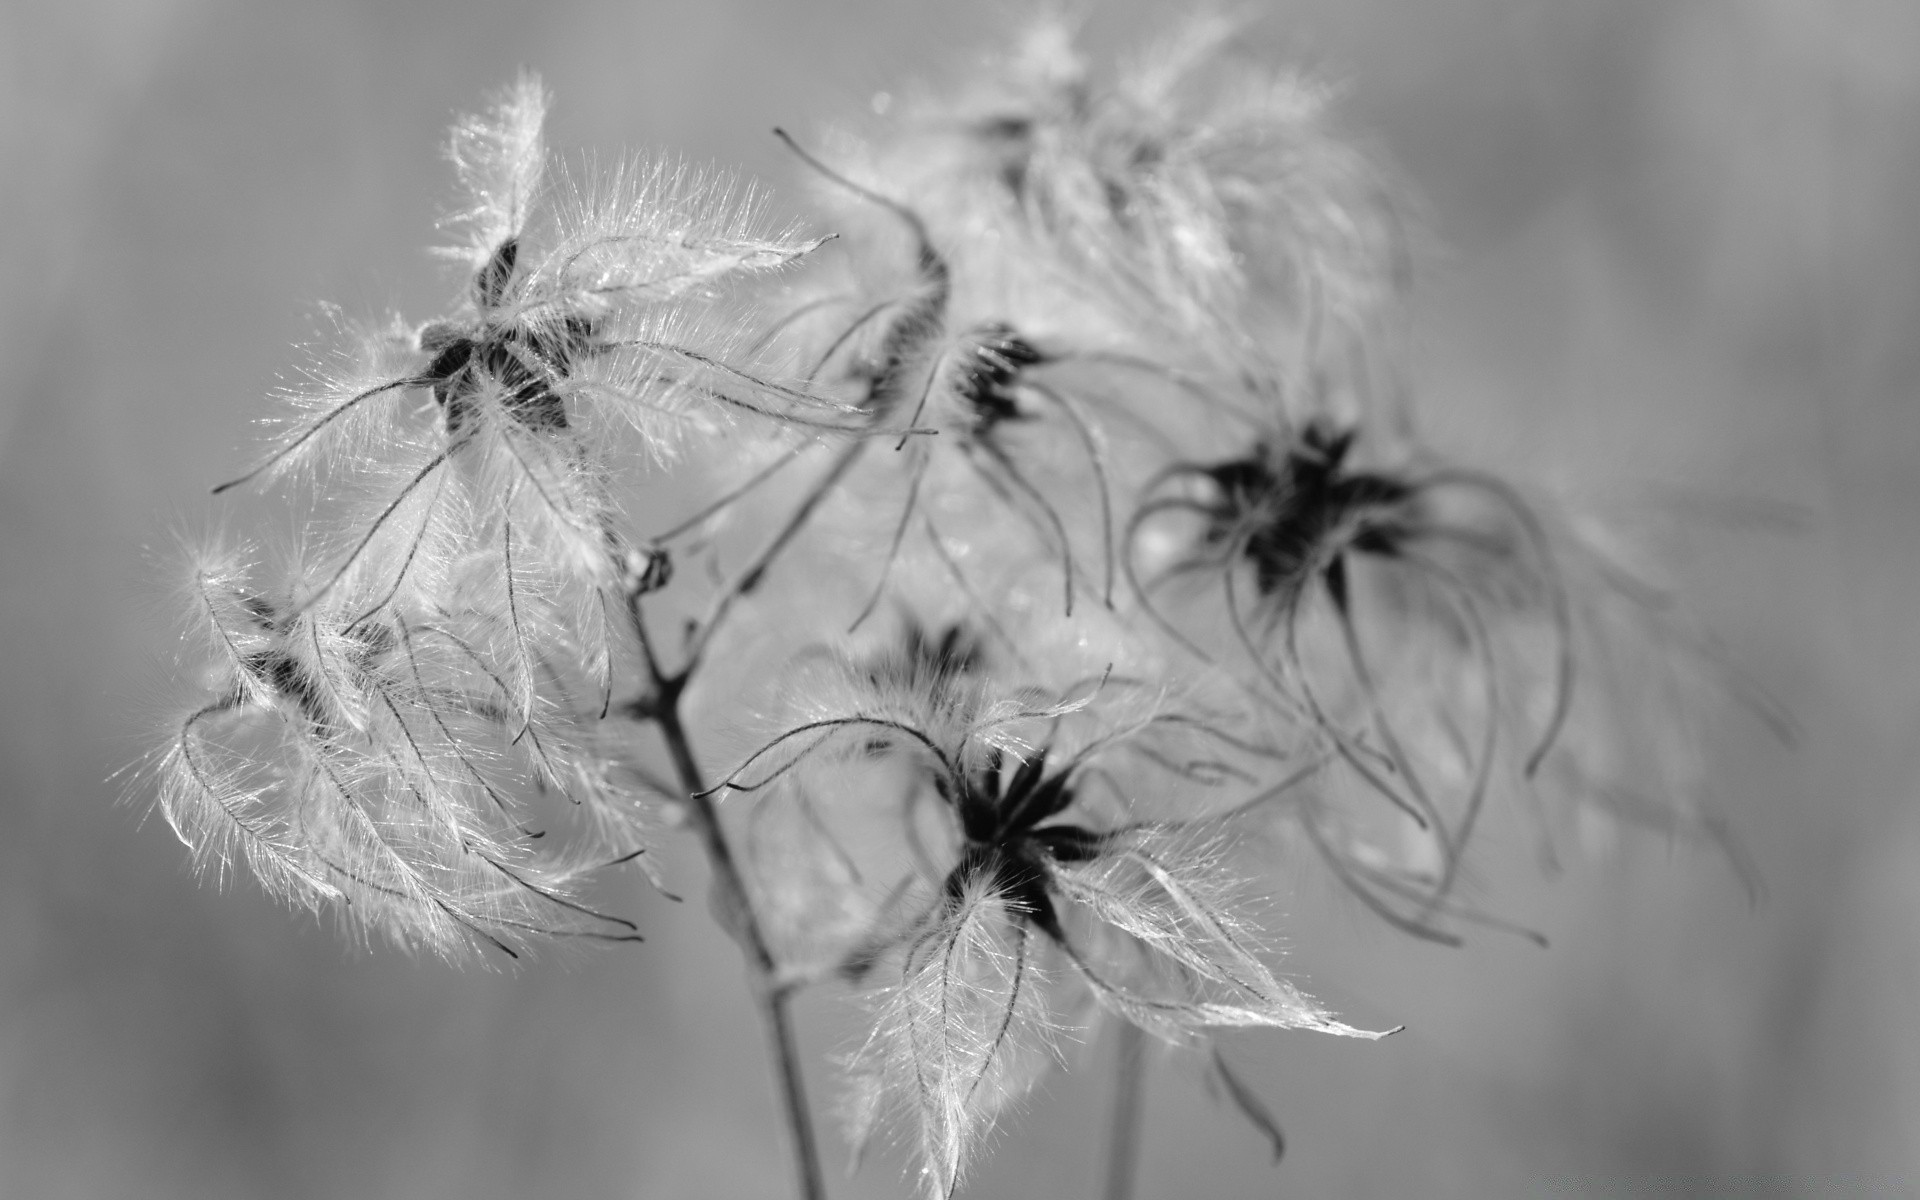 black and white dandelion nature spider winter downy monochrome flower delicate flora fragility weed insect summer seed close-up grass light